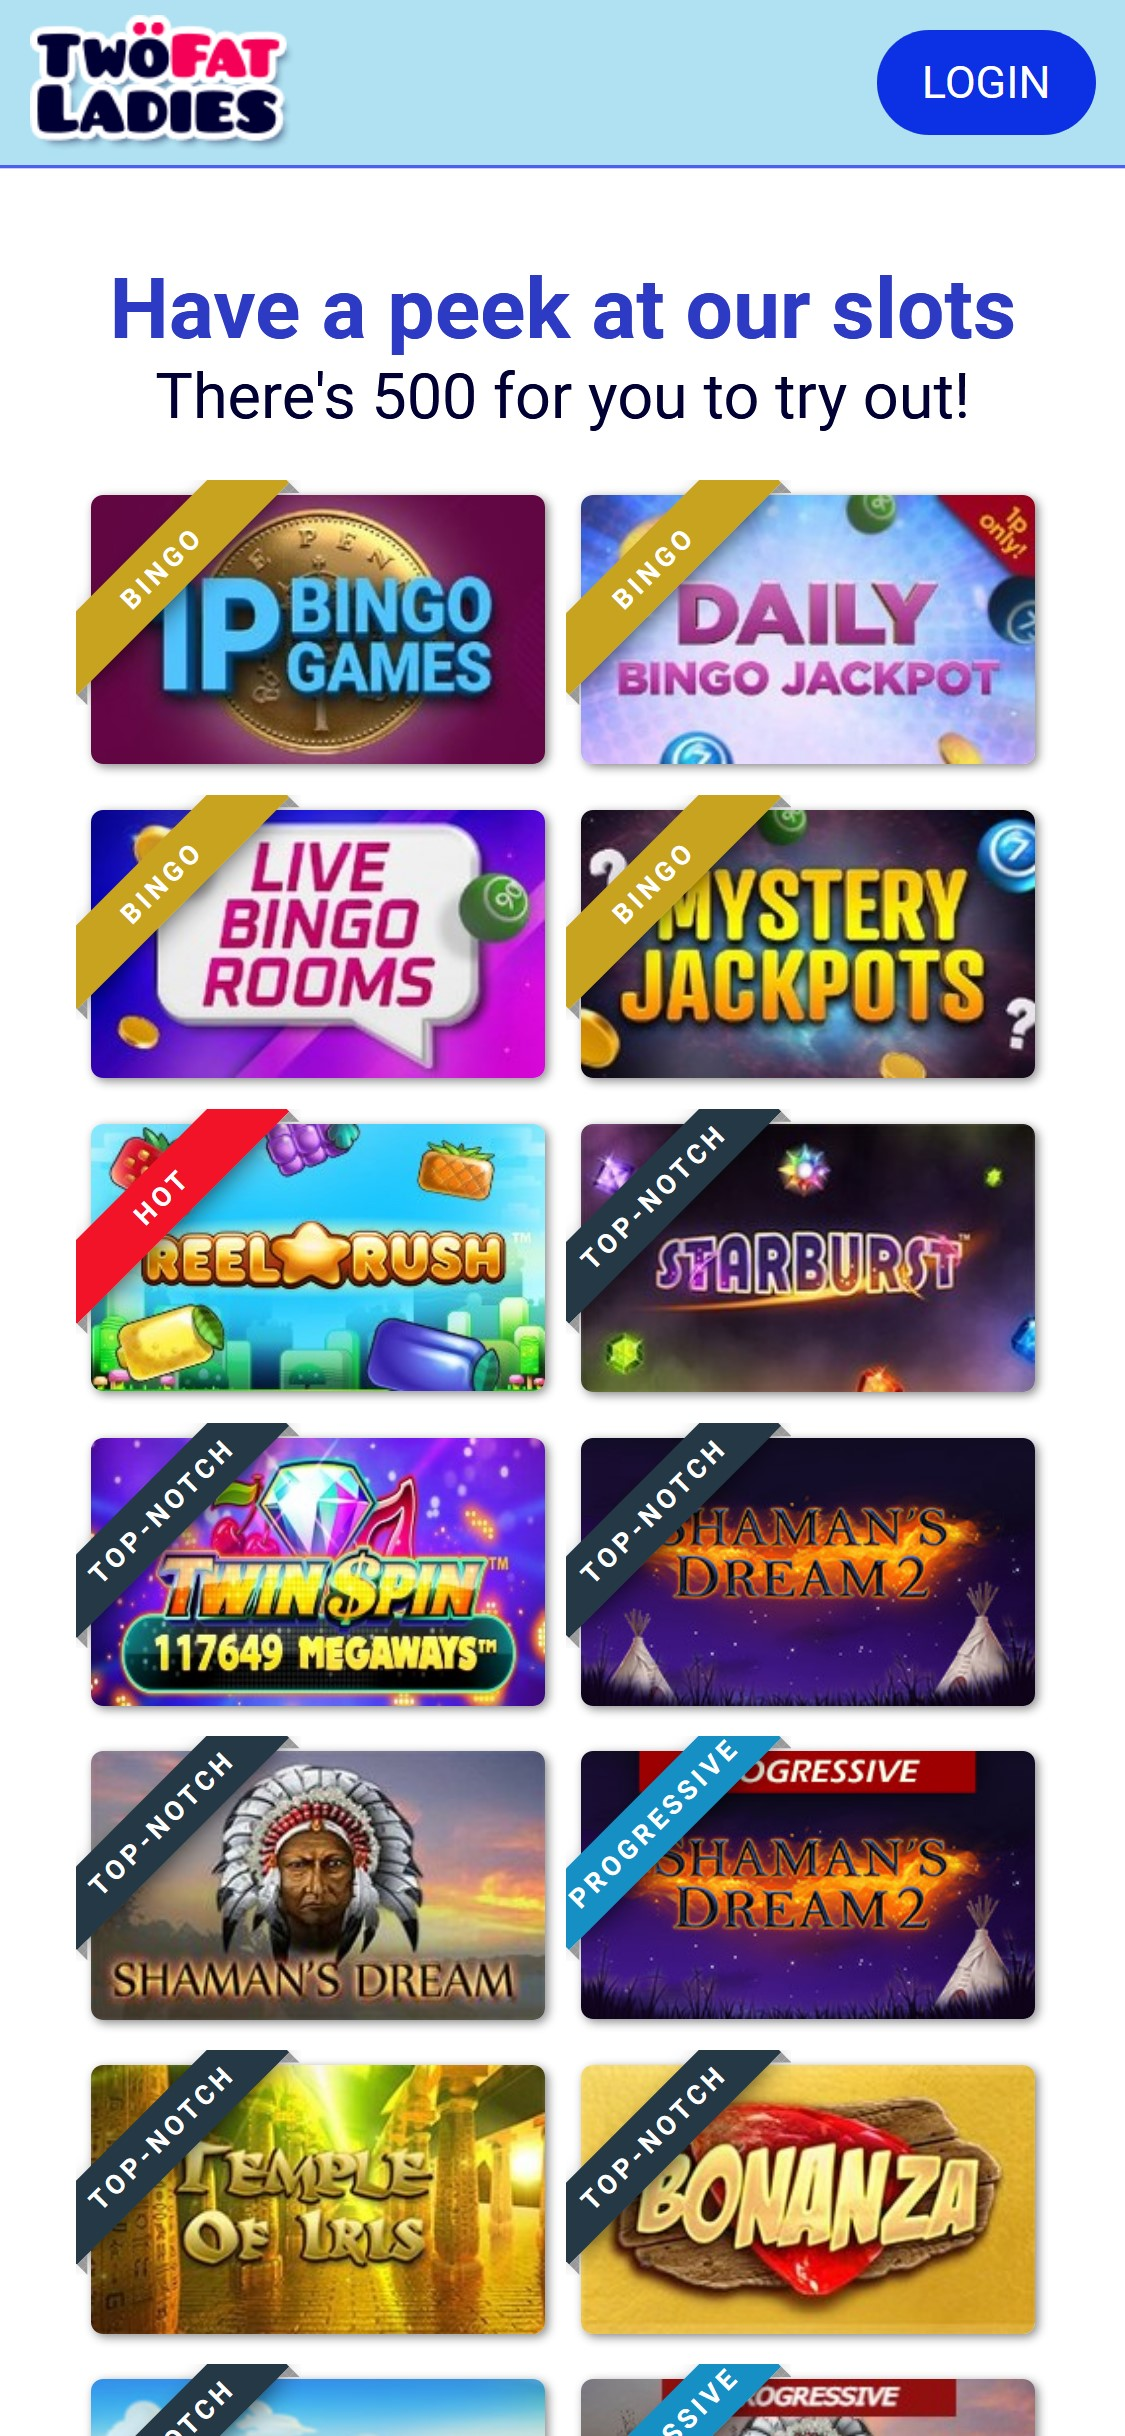 Two Fat Ladies Casino Games